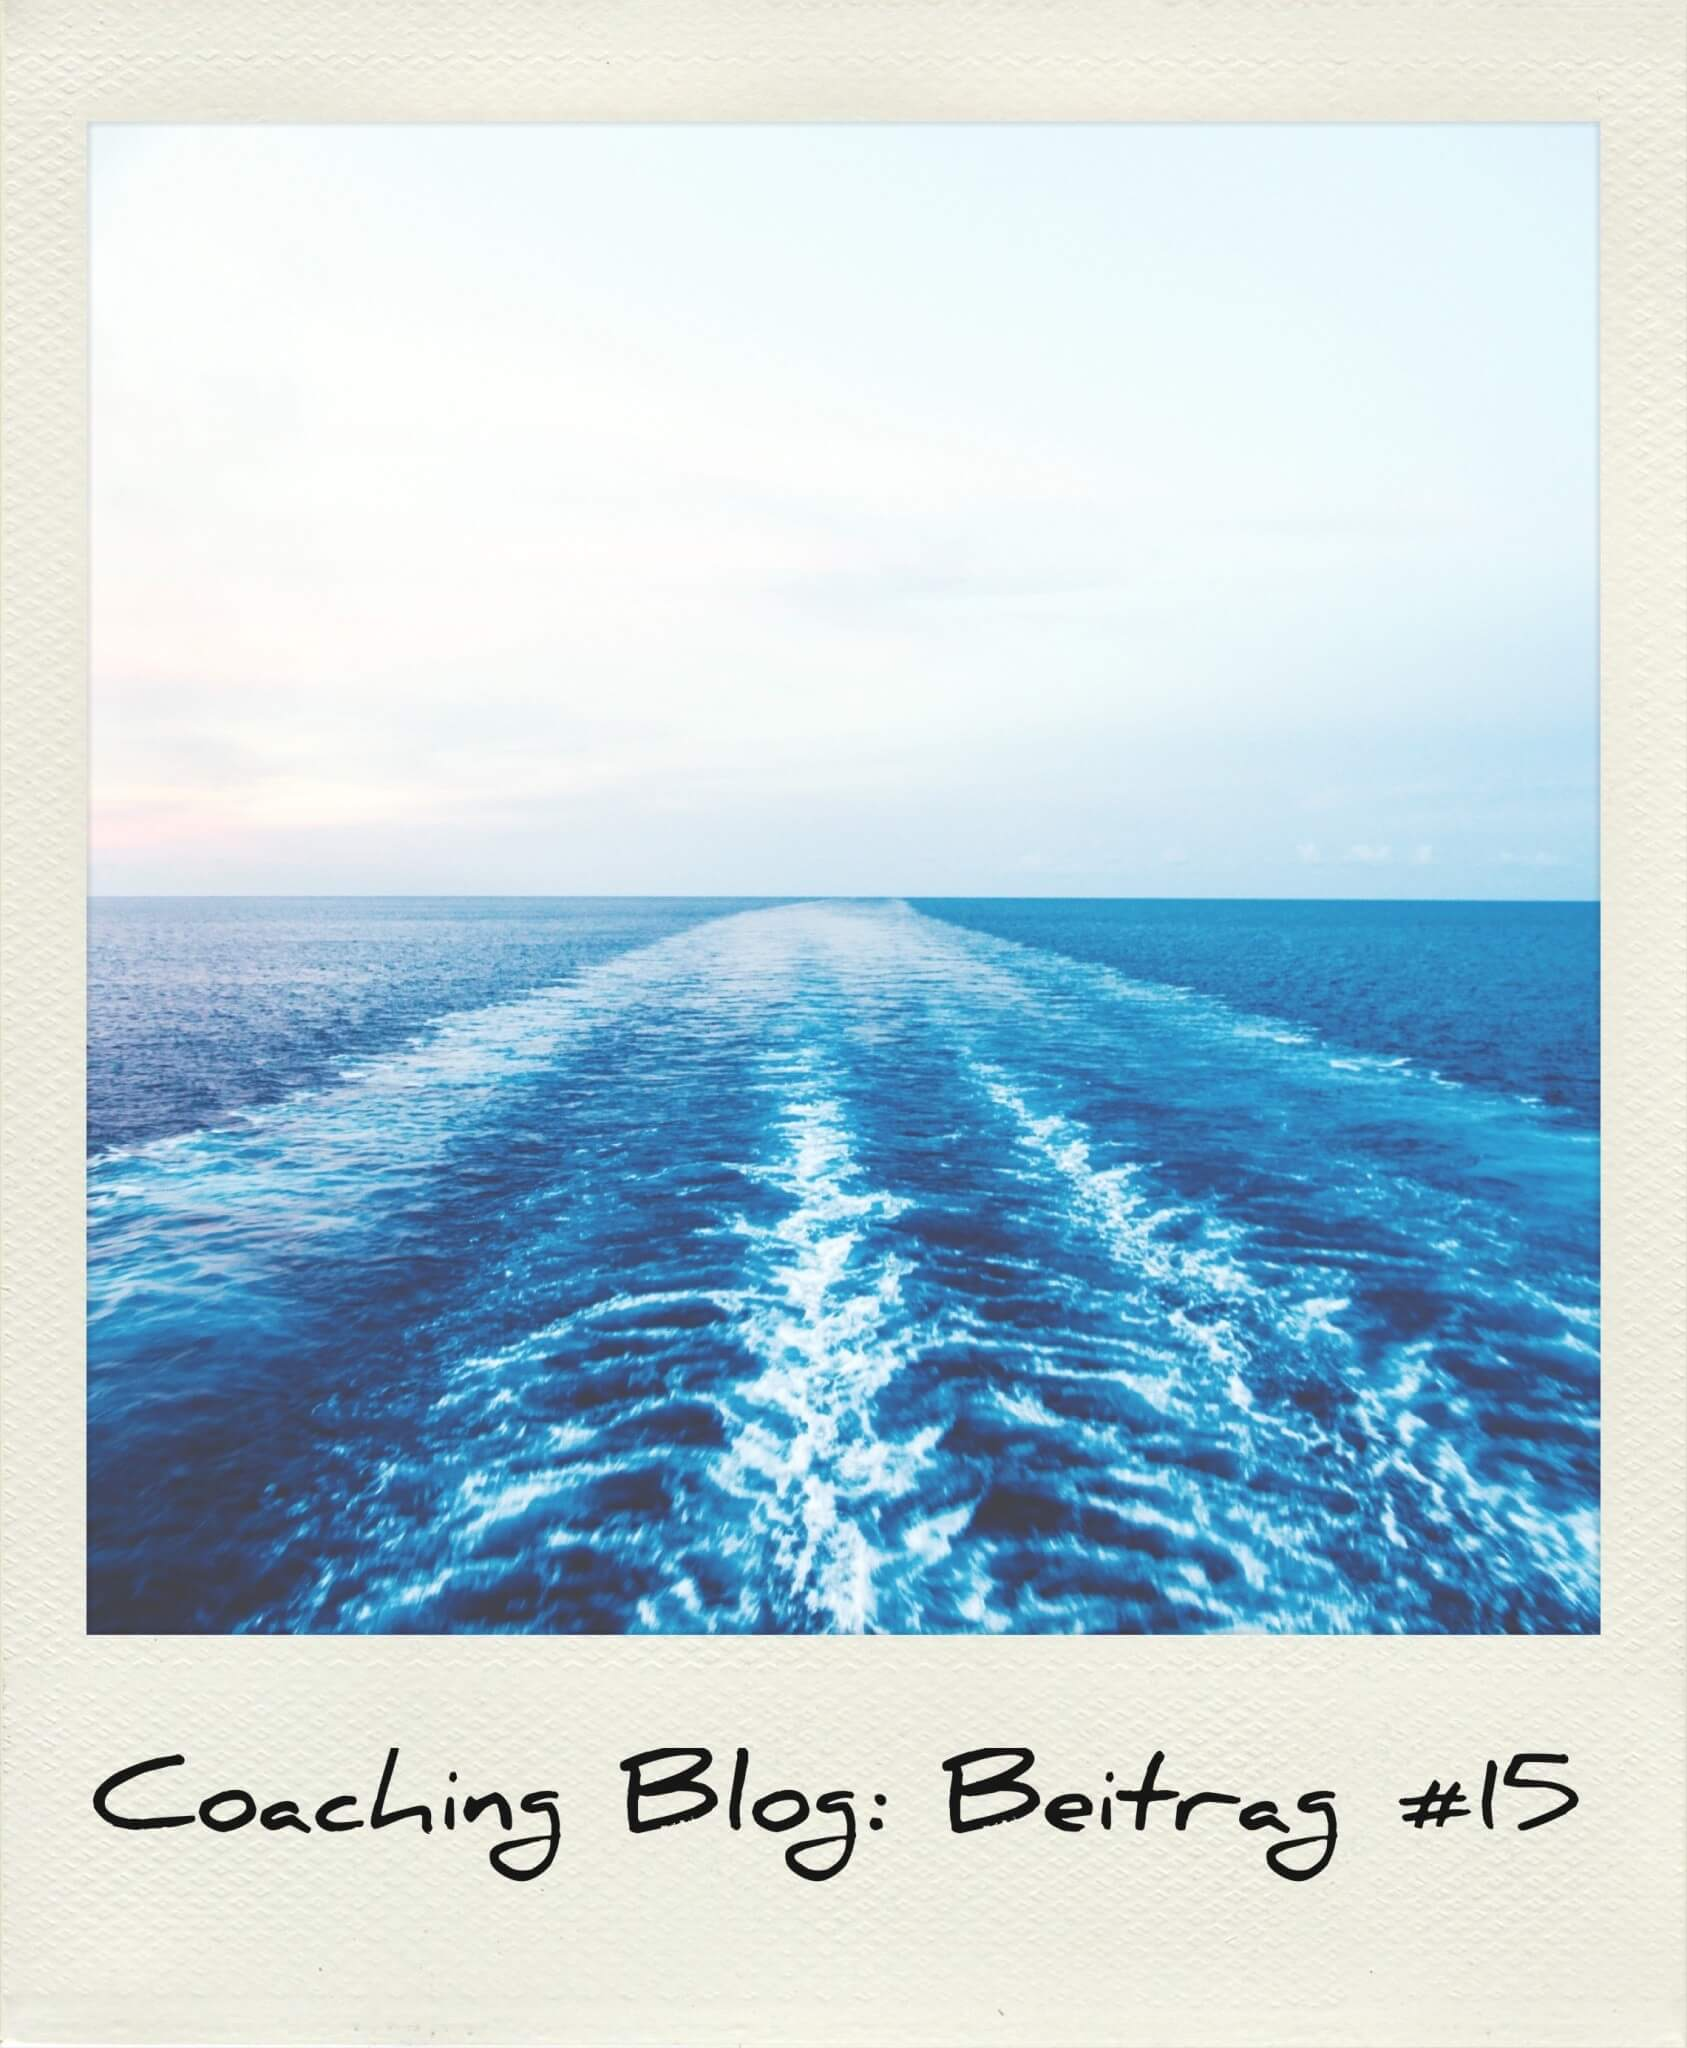 Life Coaching Laura Seiler Berlin - Coaching Blog